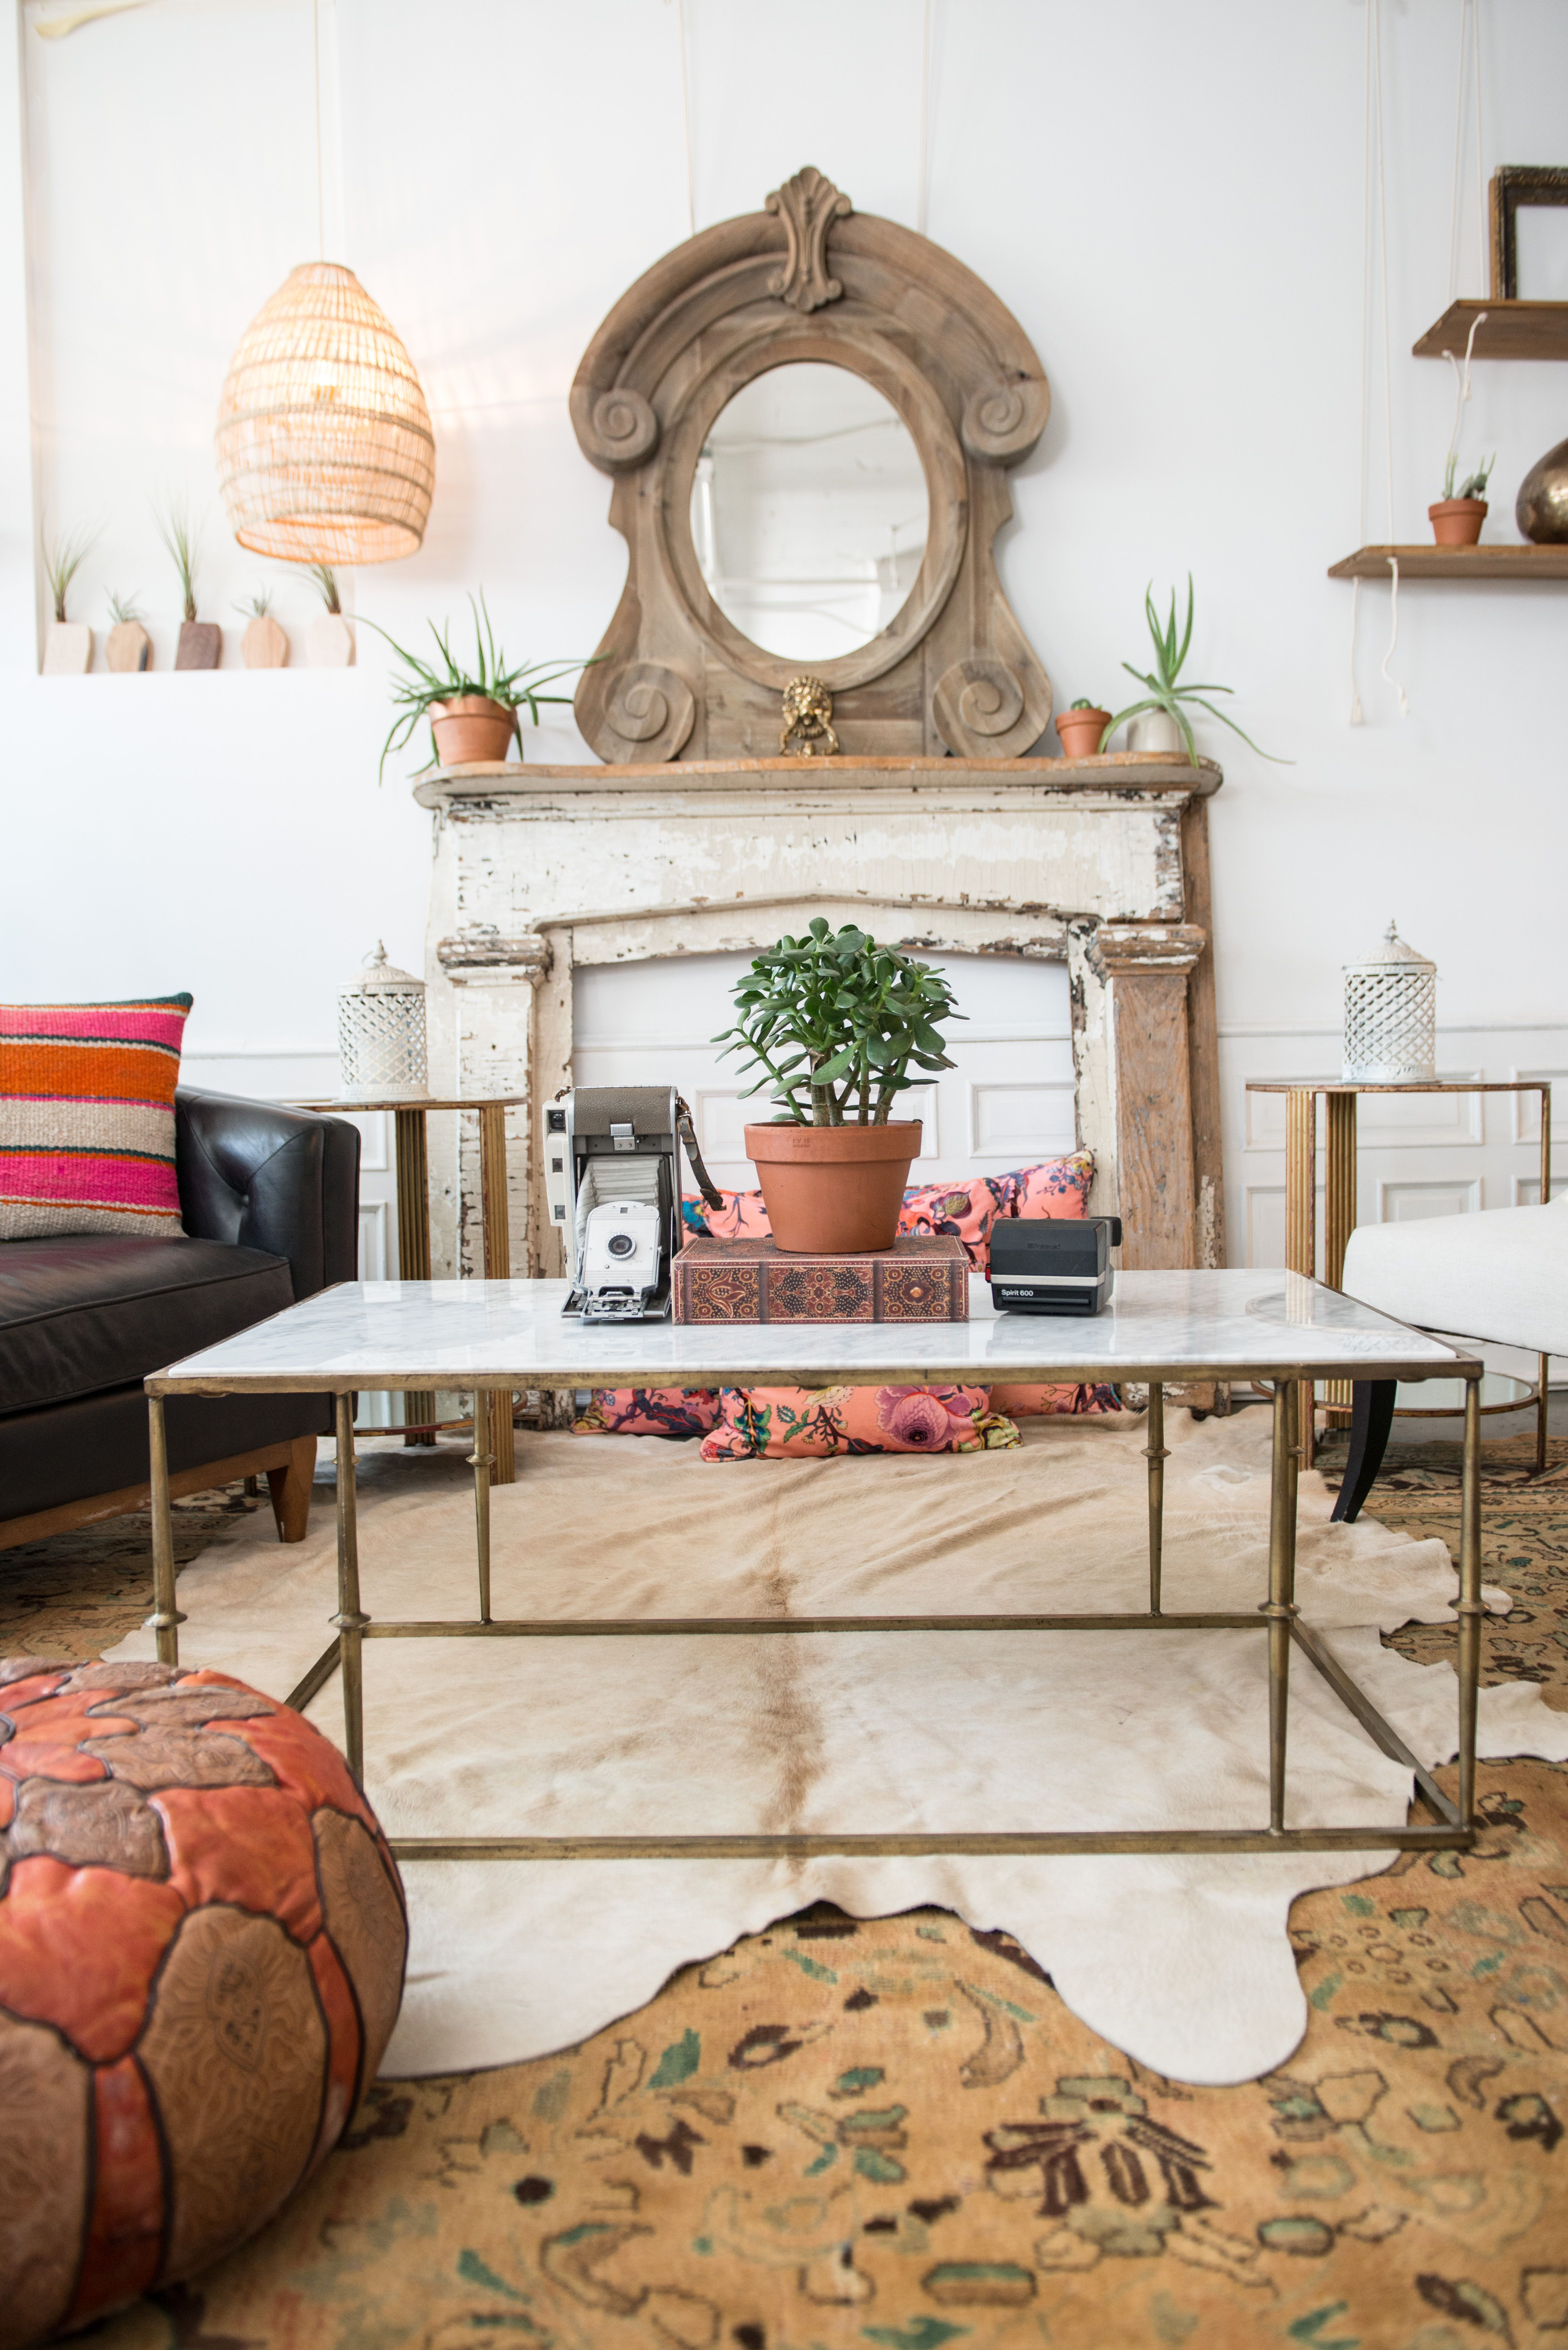 Our Leo Zodiac Style featuring our Braedon coffee table